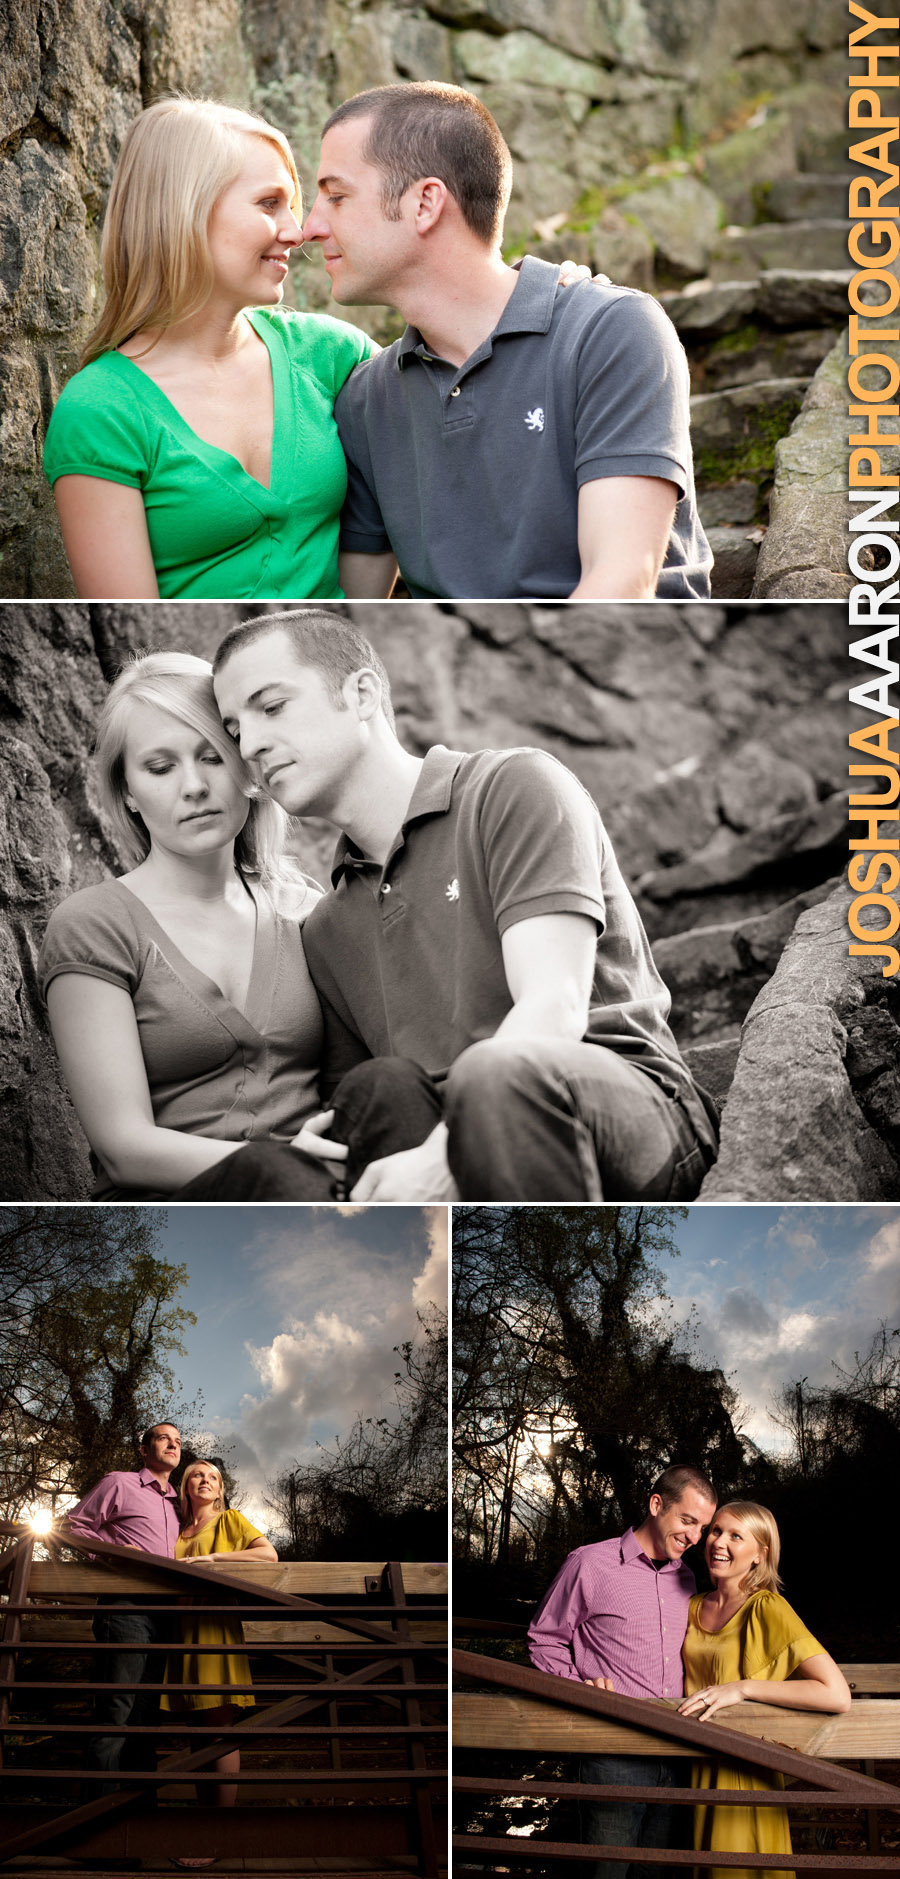 Sydney Phillip Engagement Session Greenville, SC